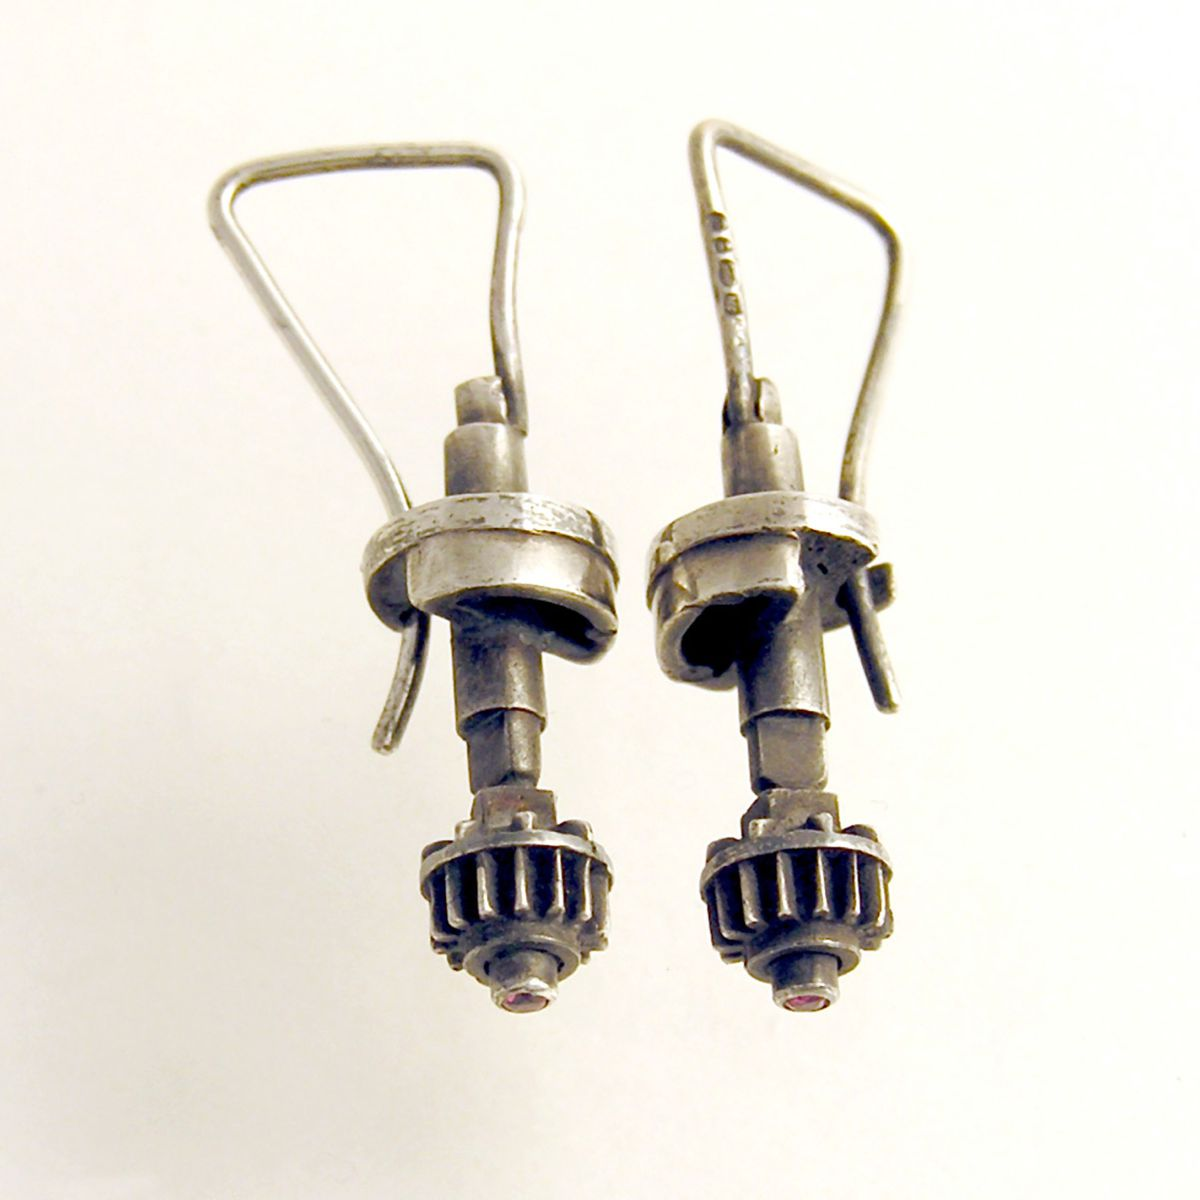 16/8pT Drop Earrings - product images  of